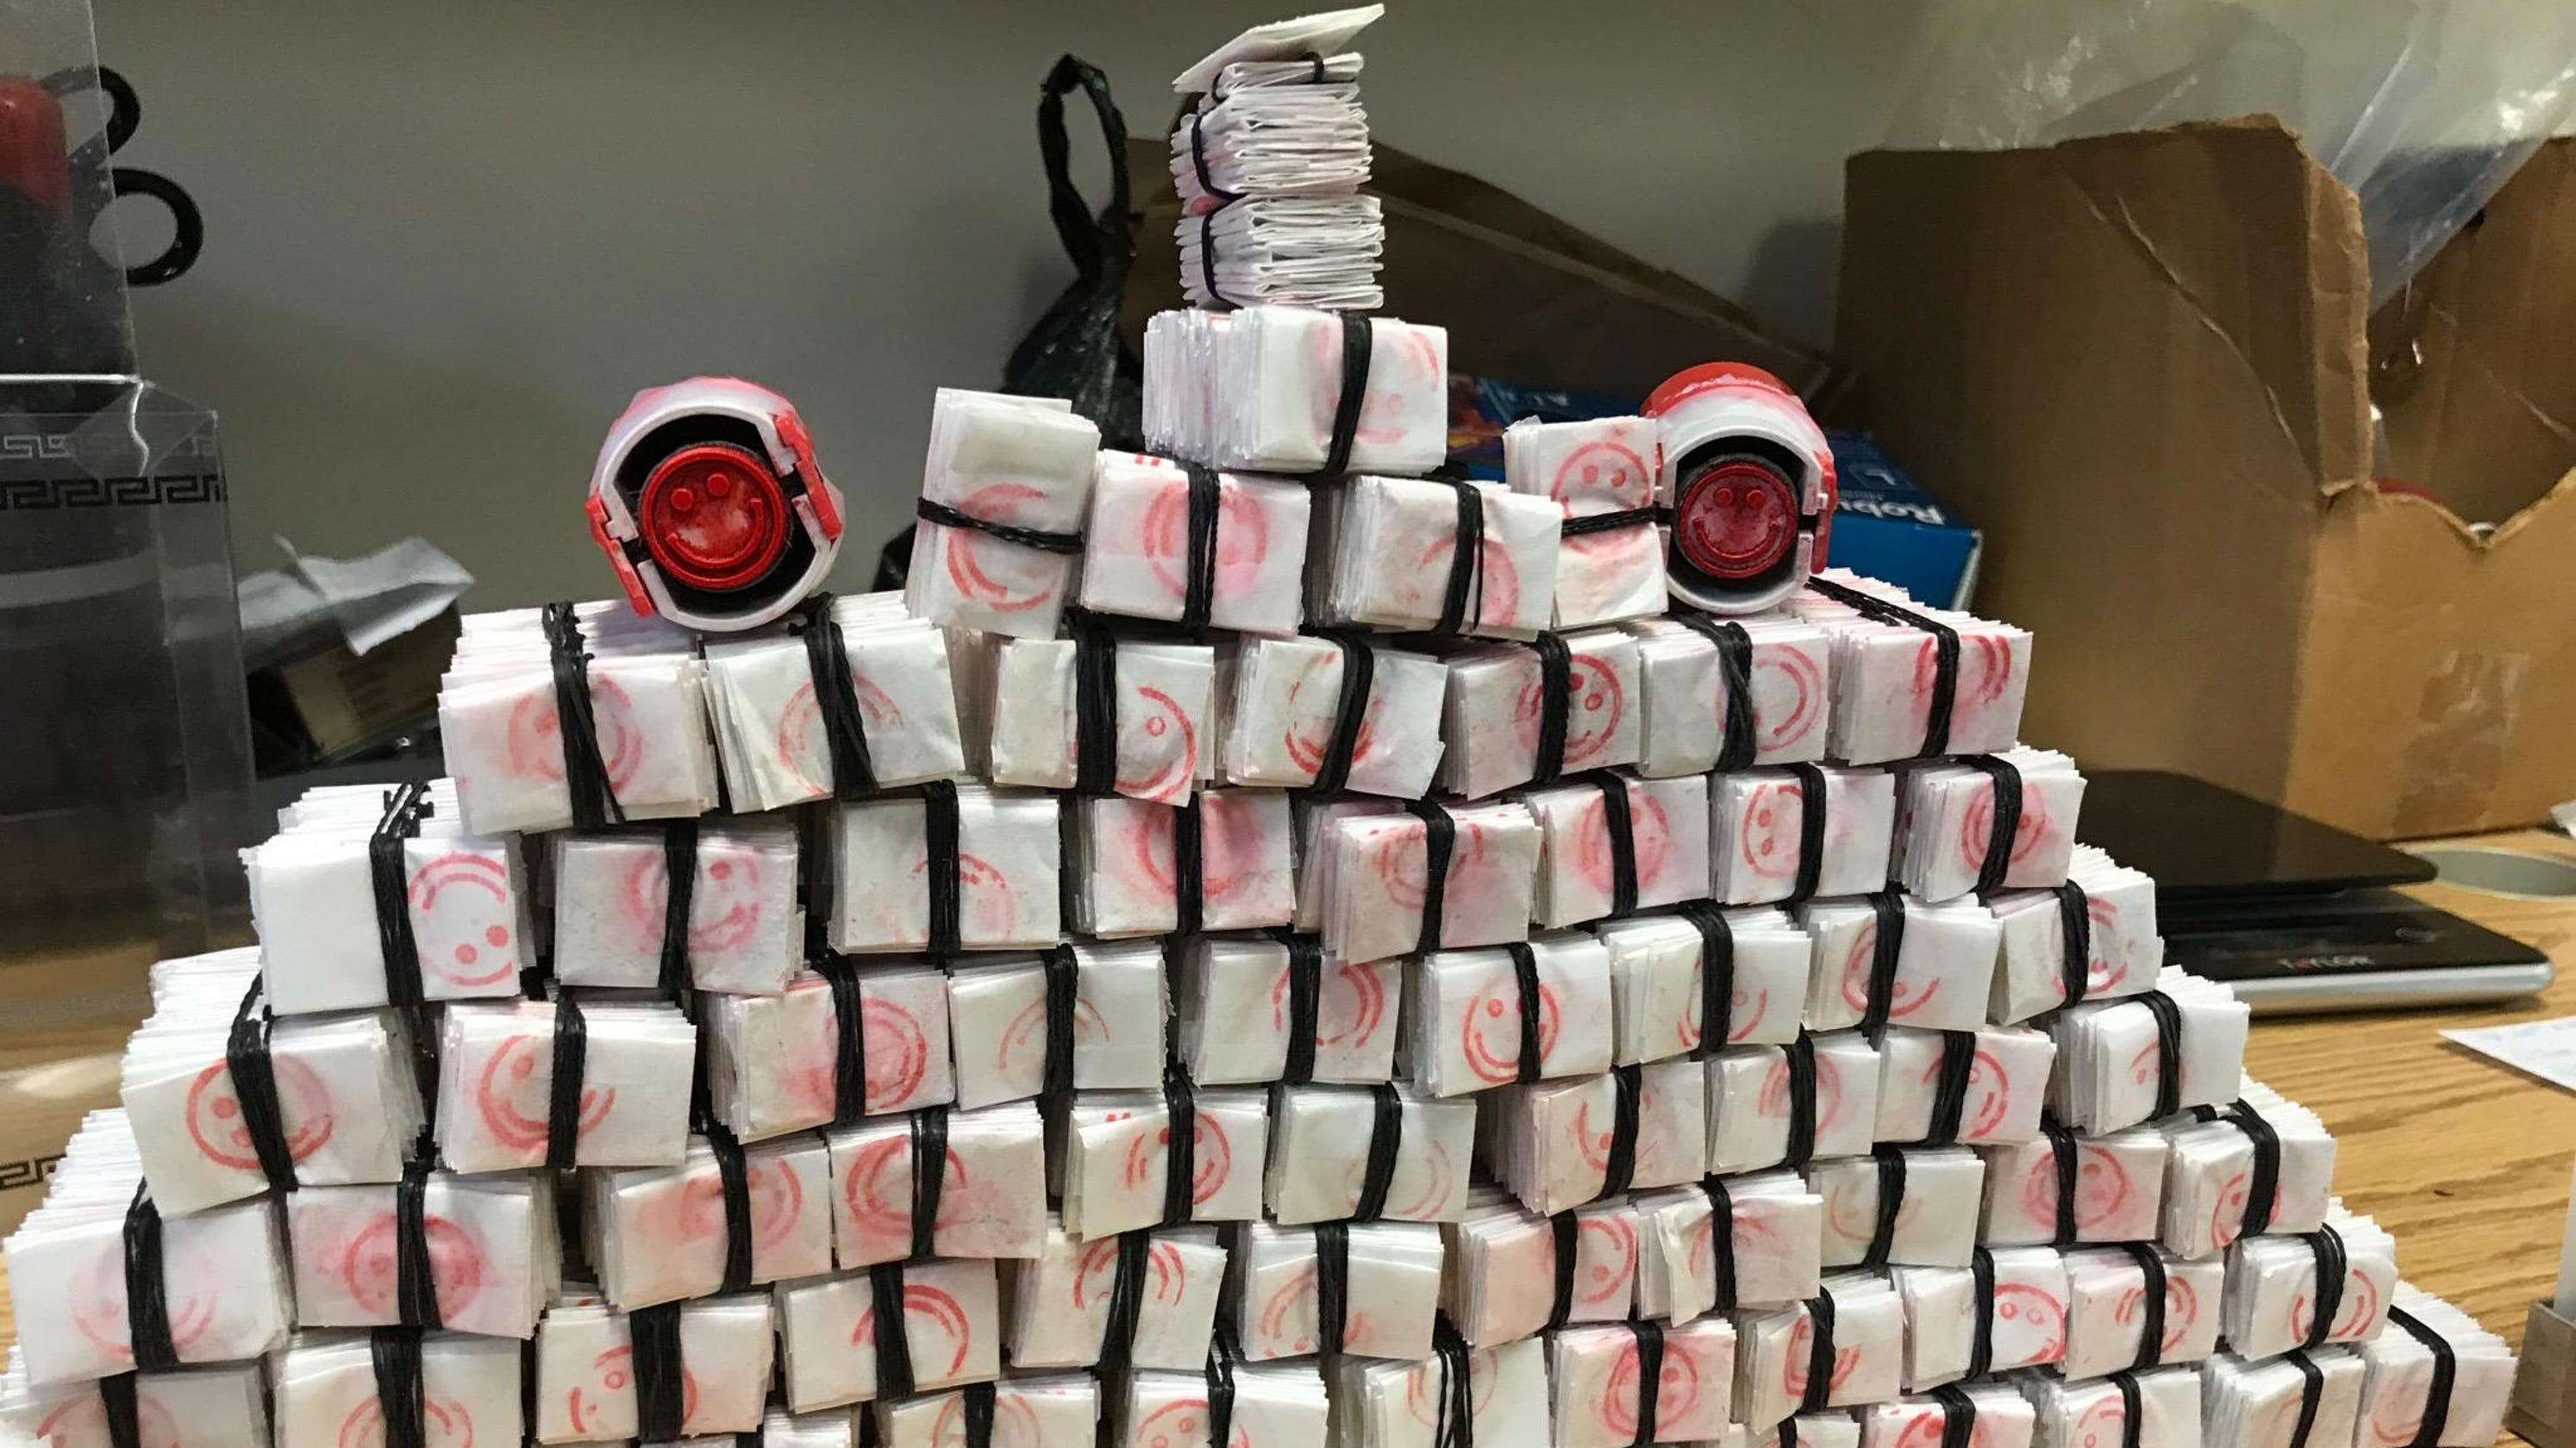 Police take down major drug enterprise in Mount Vernon, the Bronx